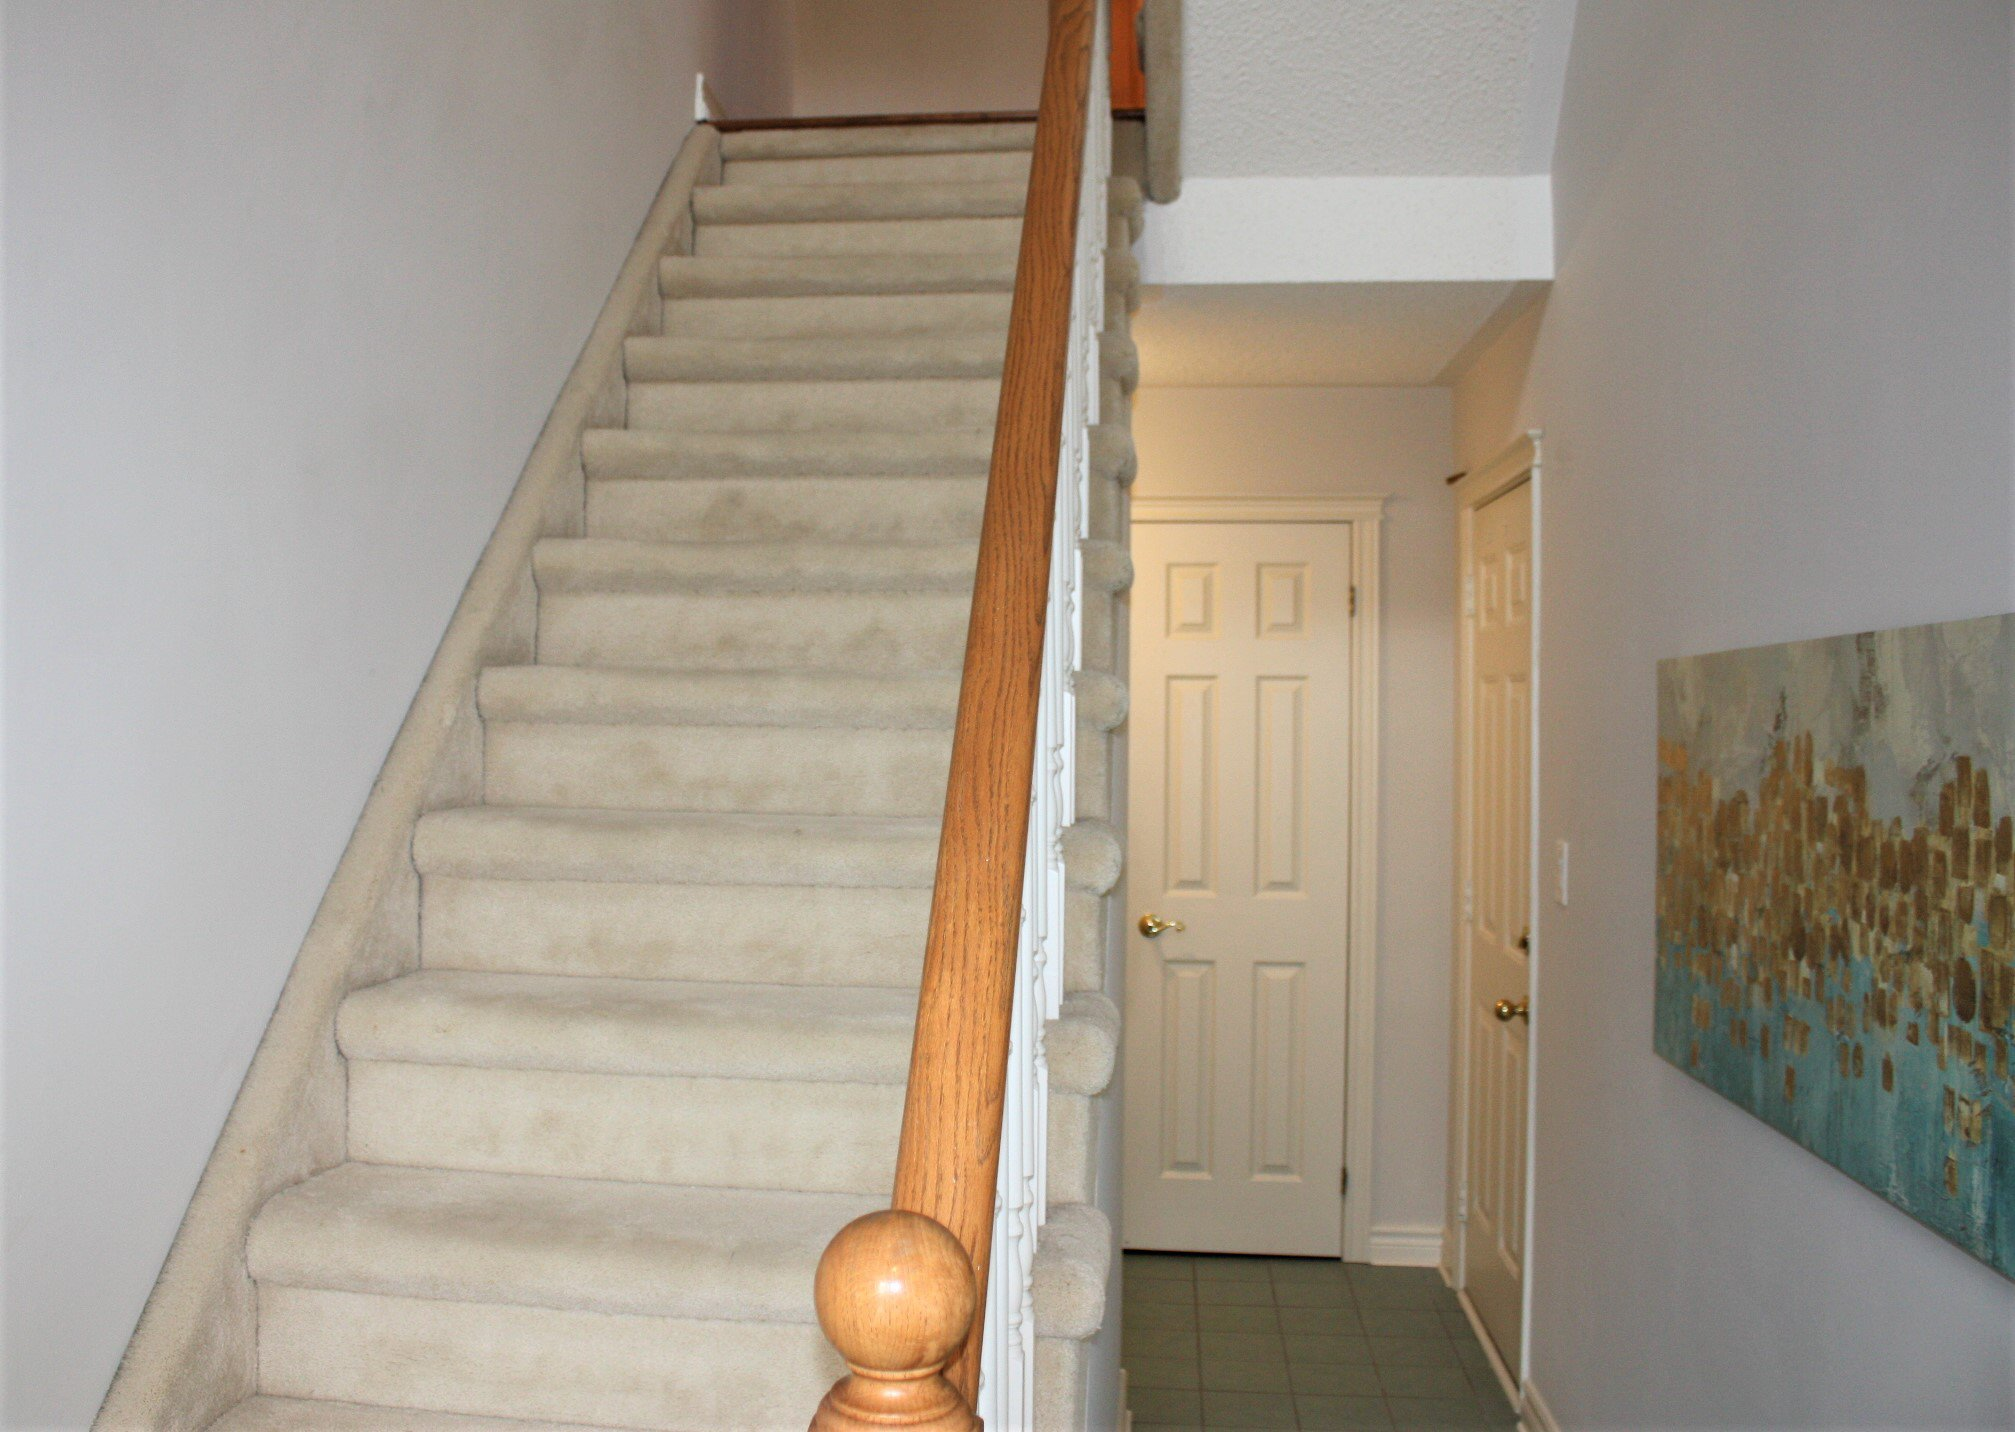 Photo 5: Photos: 113 245 Elgin Street in Cobourg: Residential Attached for sale : MLS®# 219780